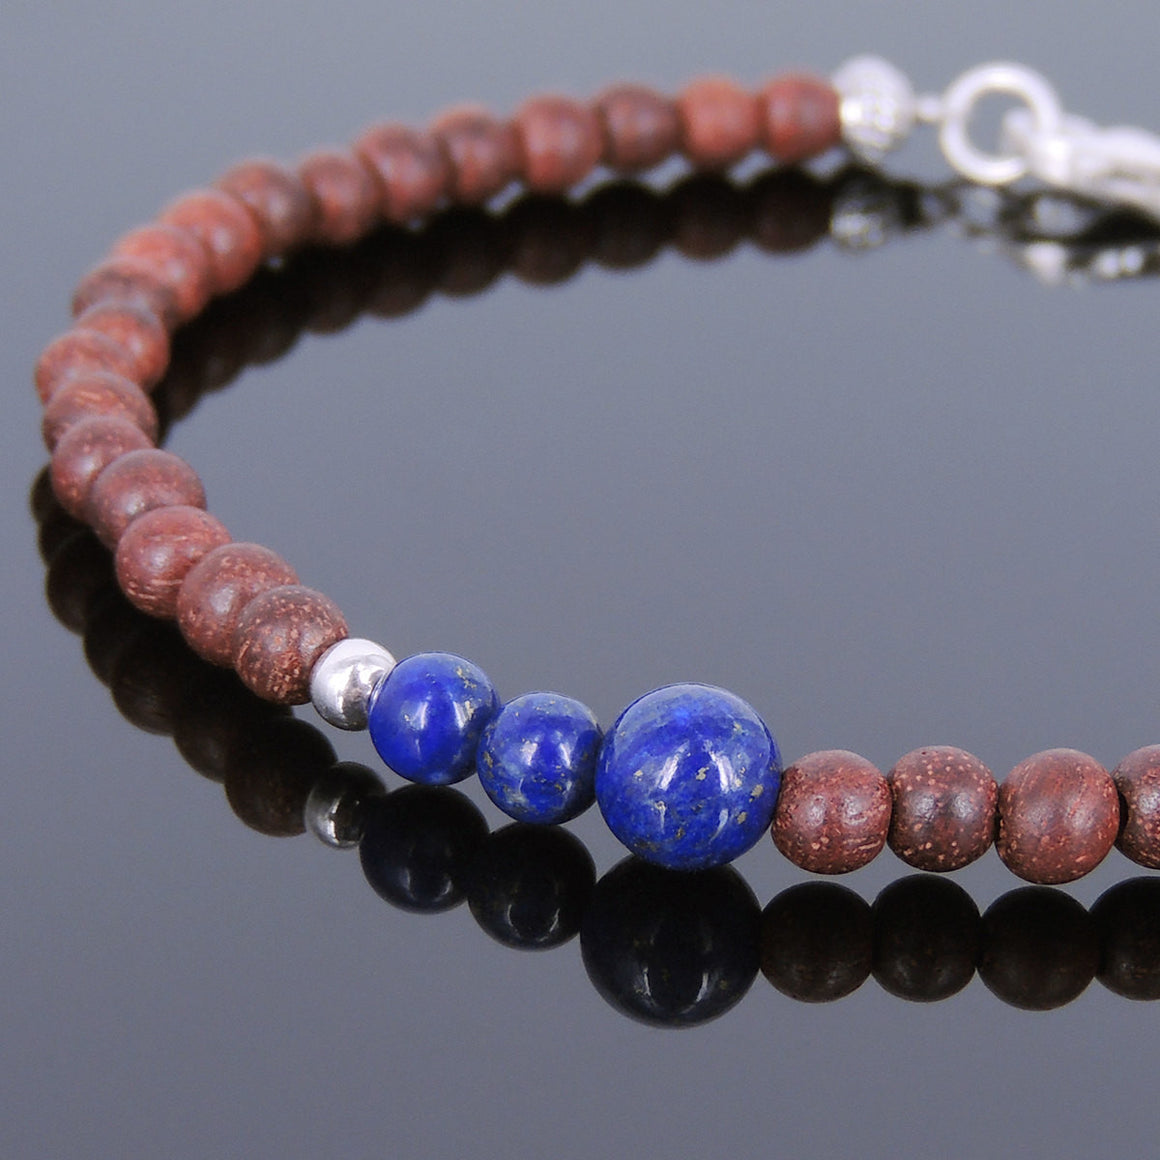 Rosewood & Lapis Lazuli Healing Gemstone Bracelet with S925 Sterling Silver Spacer Beads & Clasp BR199